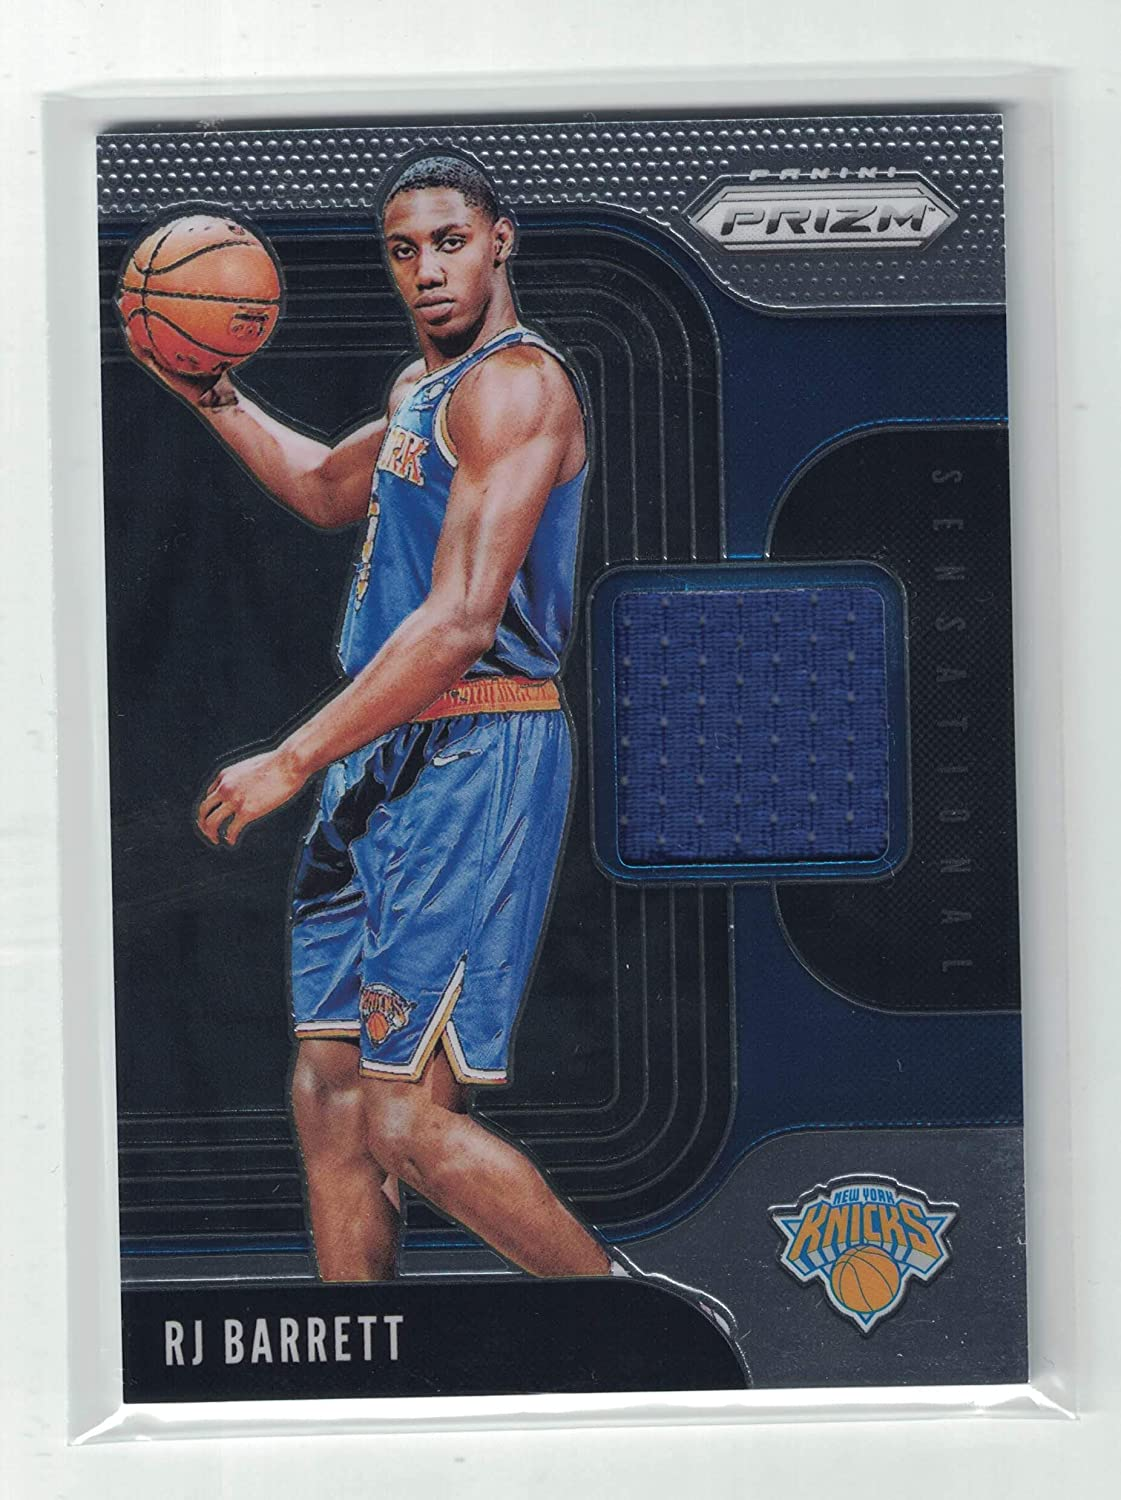 2019 Panini Prizm RJ Barrett Rookie Game Worn Jersey Patch Card